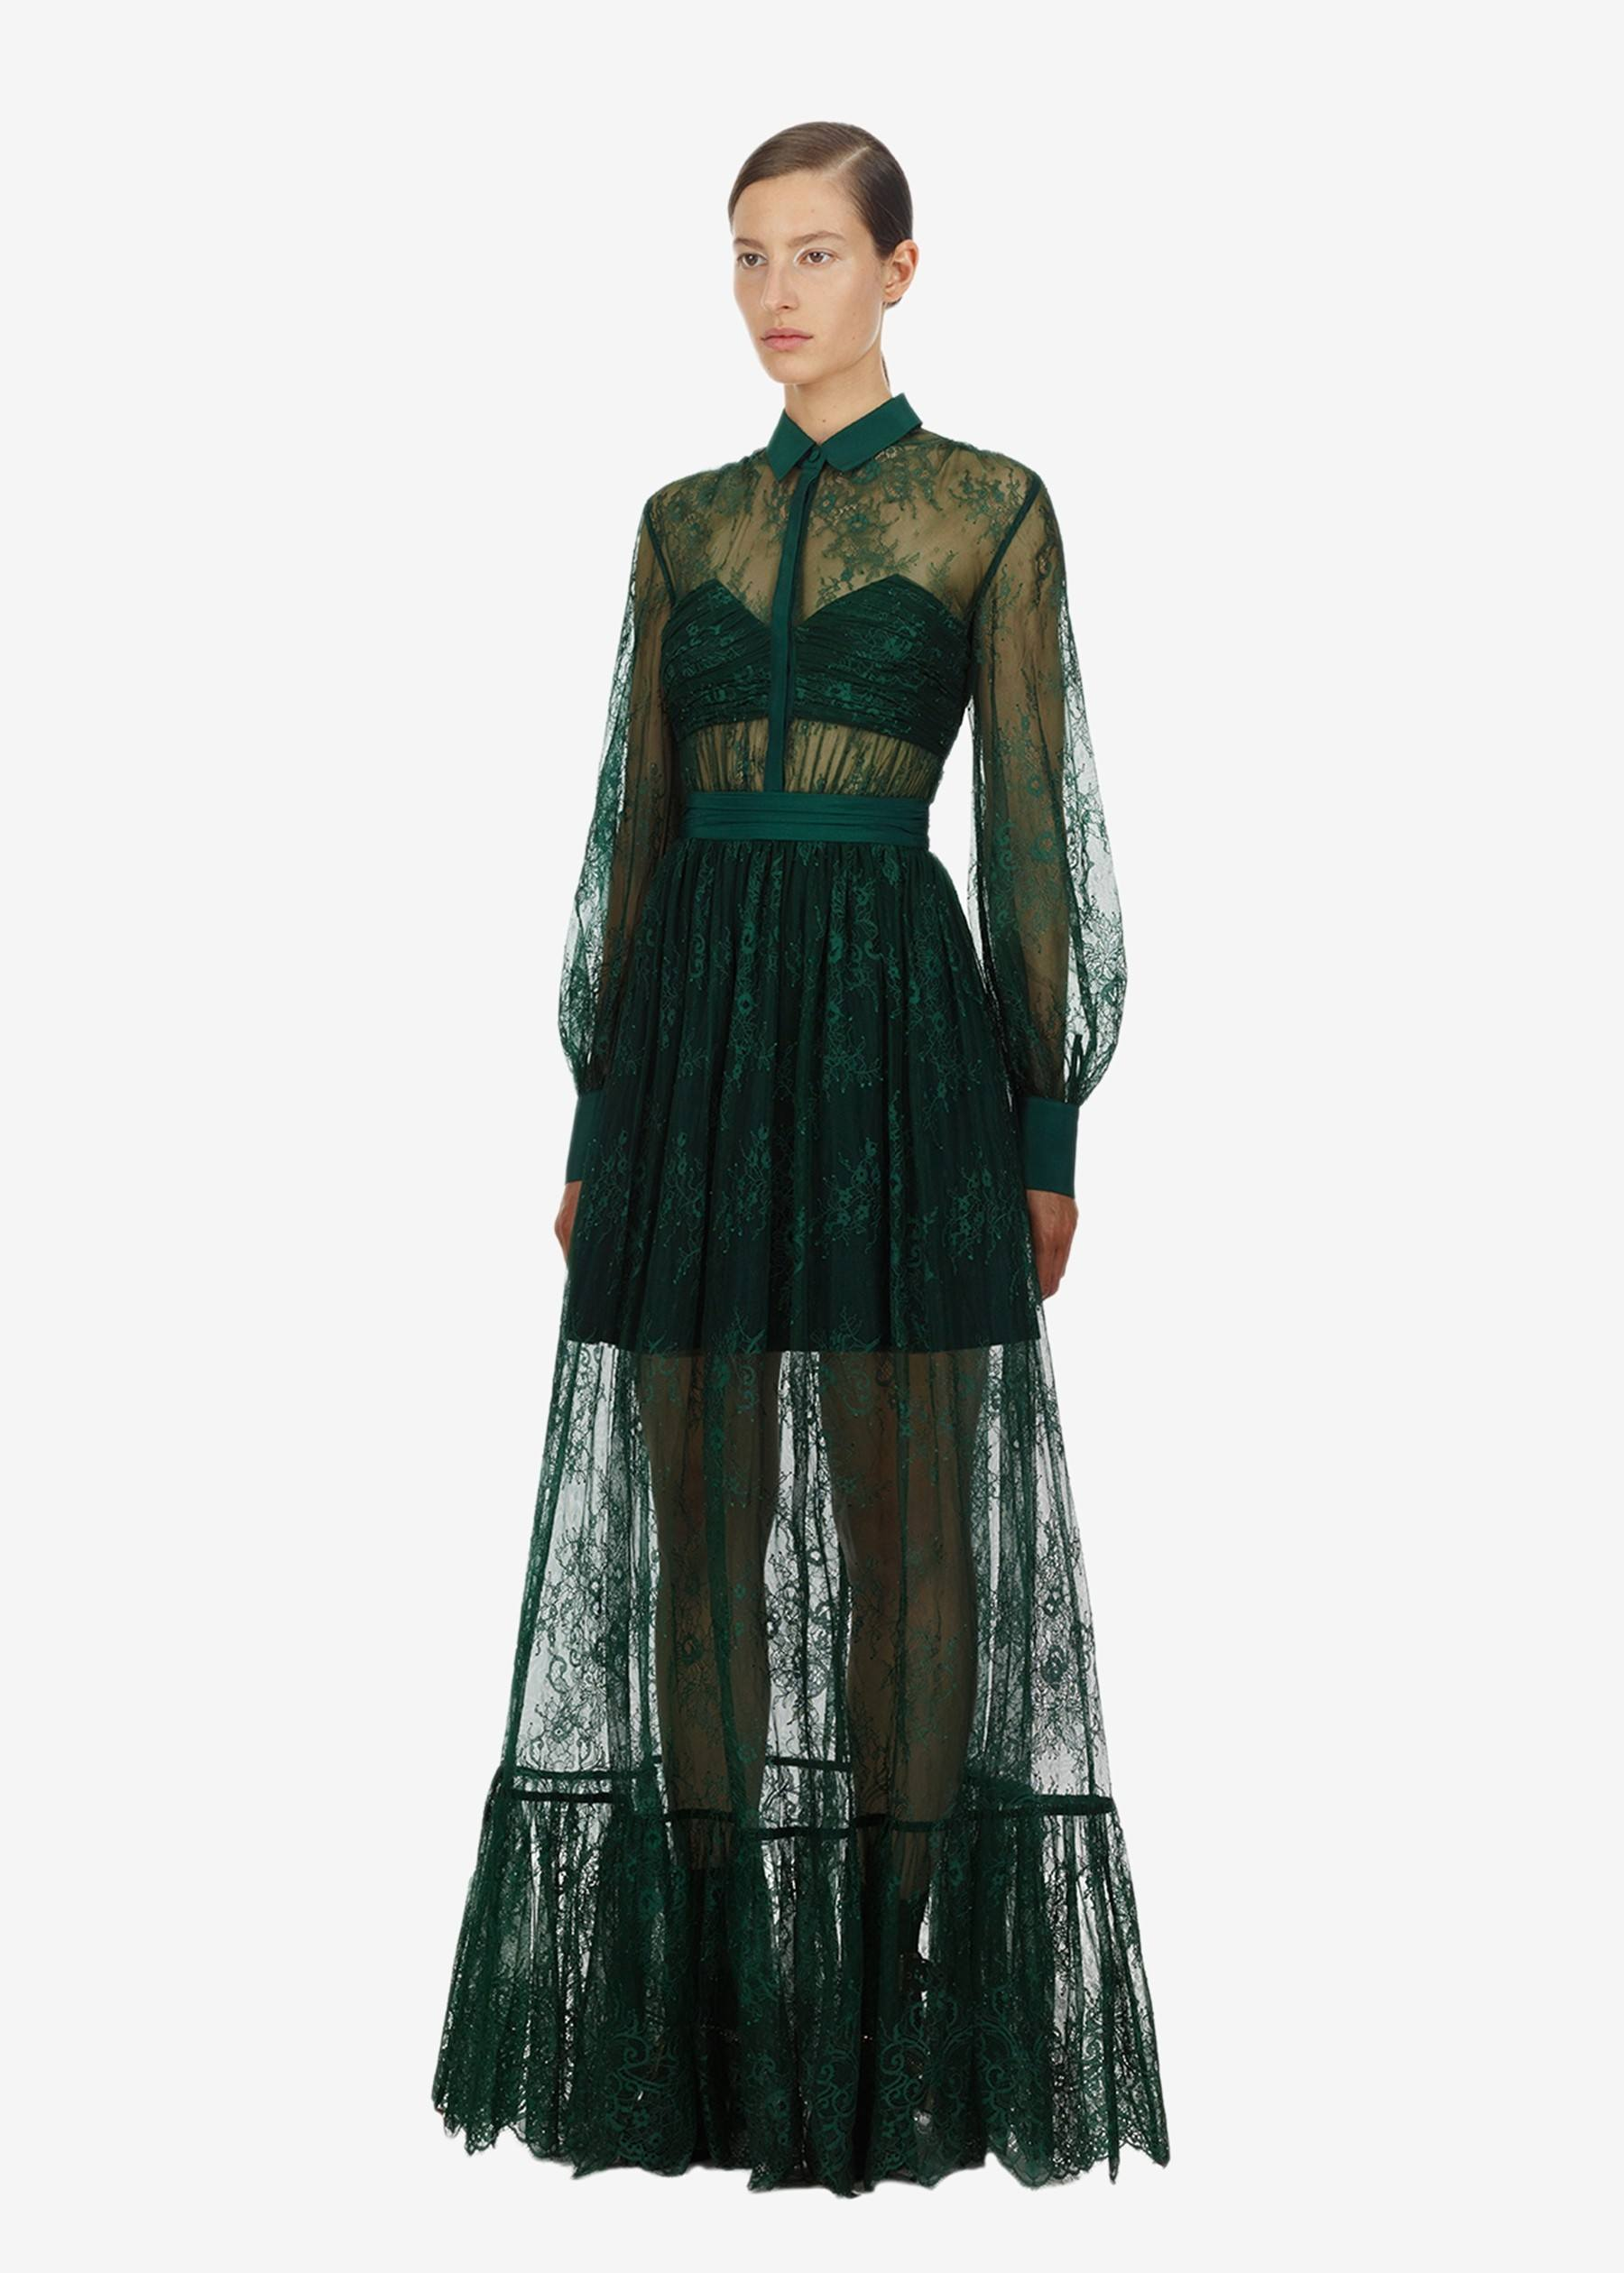 Self-Portrait Floral Fine Lace Gown in Green.jpg